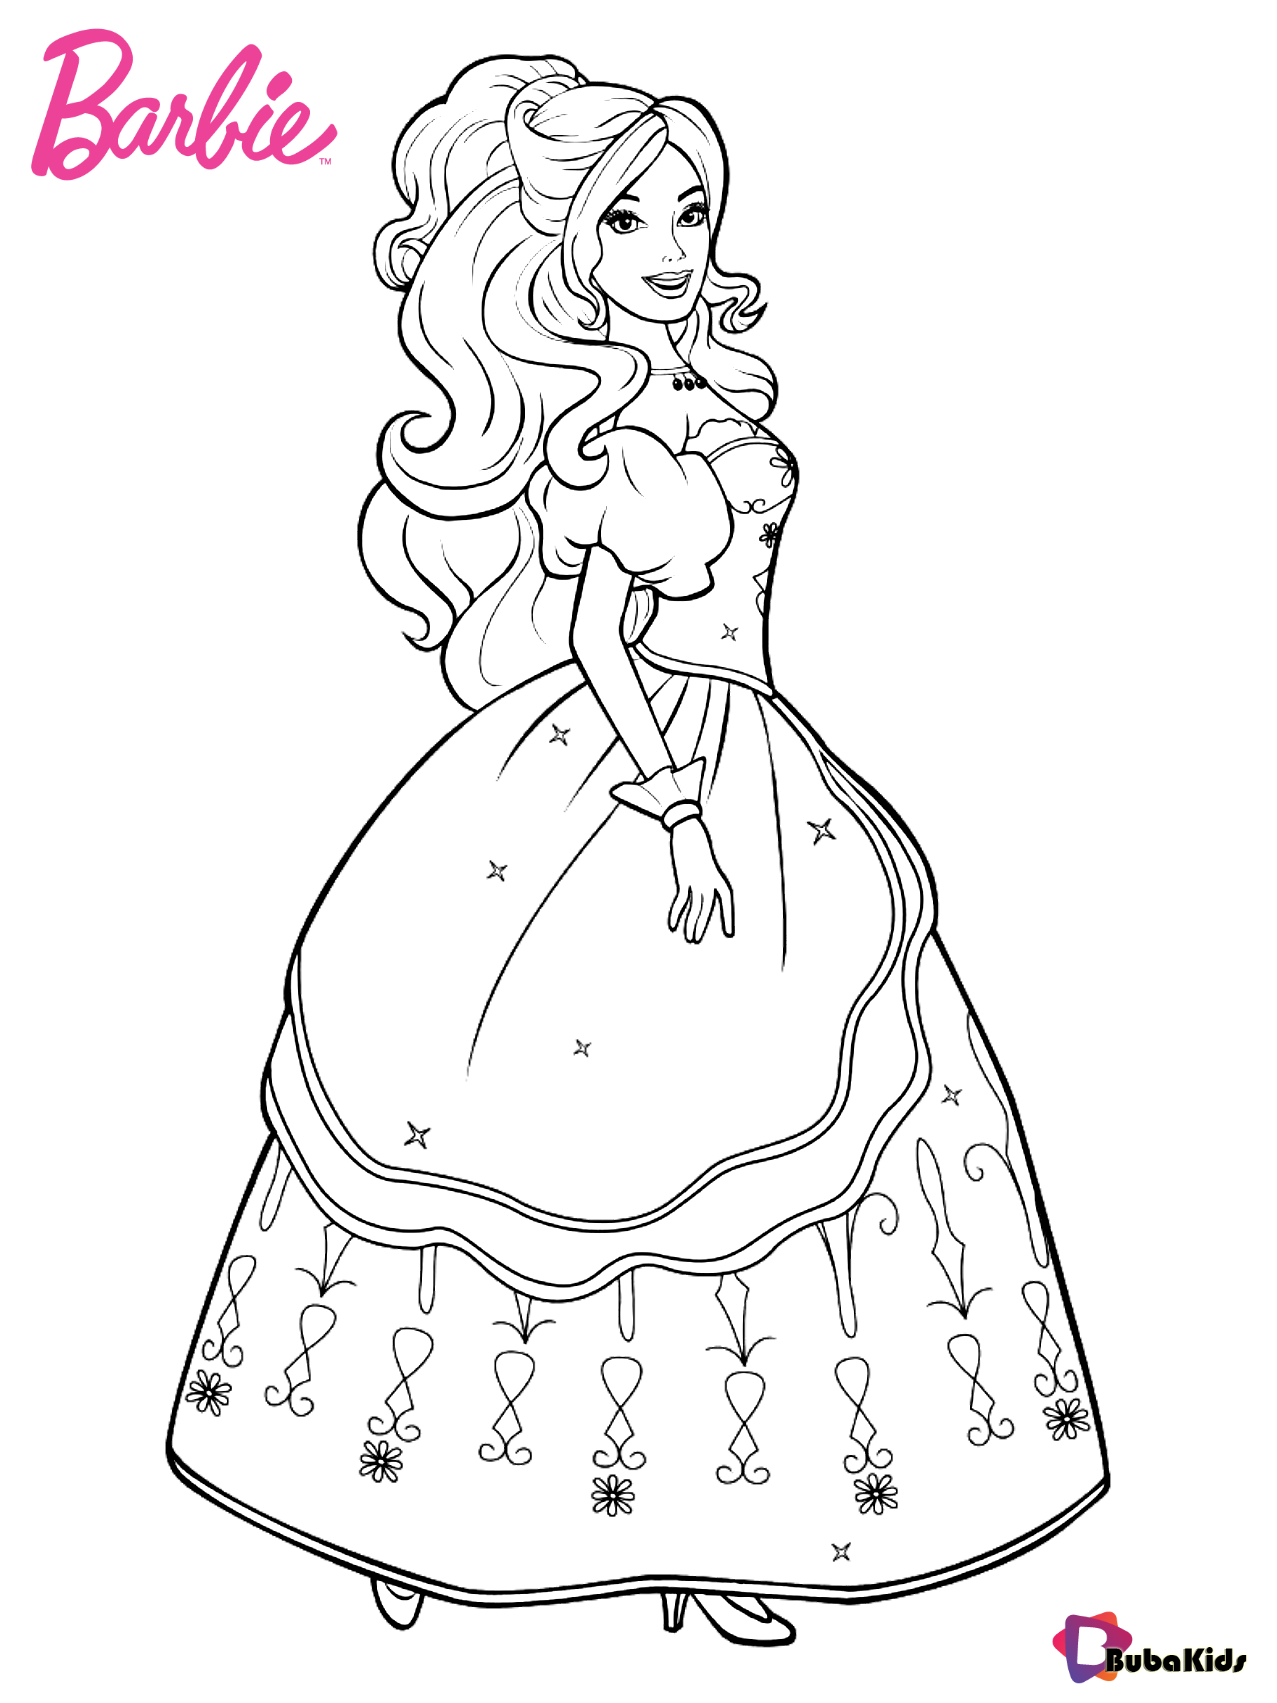 Pin By Lisa On Printables Barbie Coloring Pages Barbie Coloring Princess Coloring